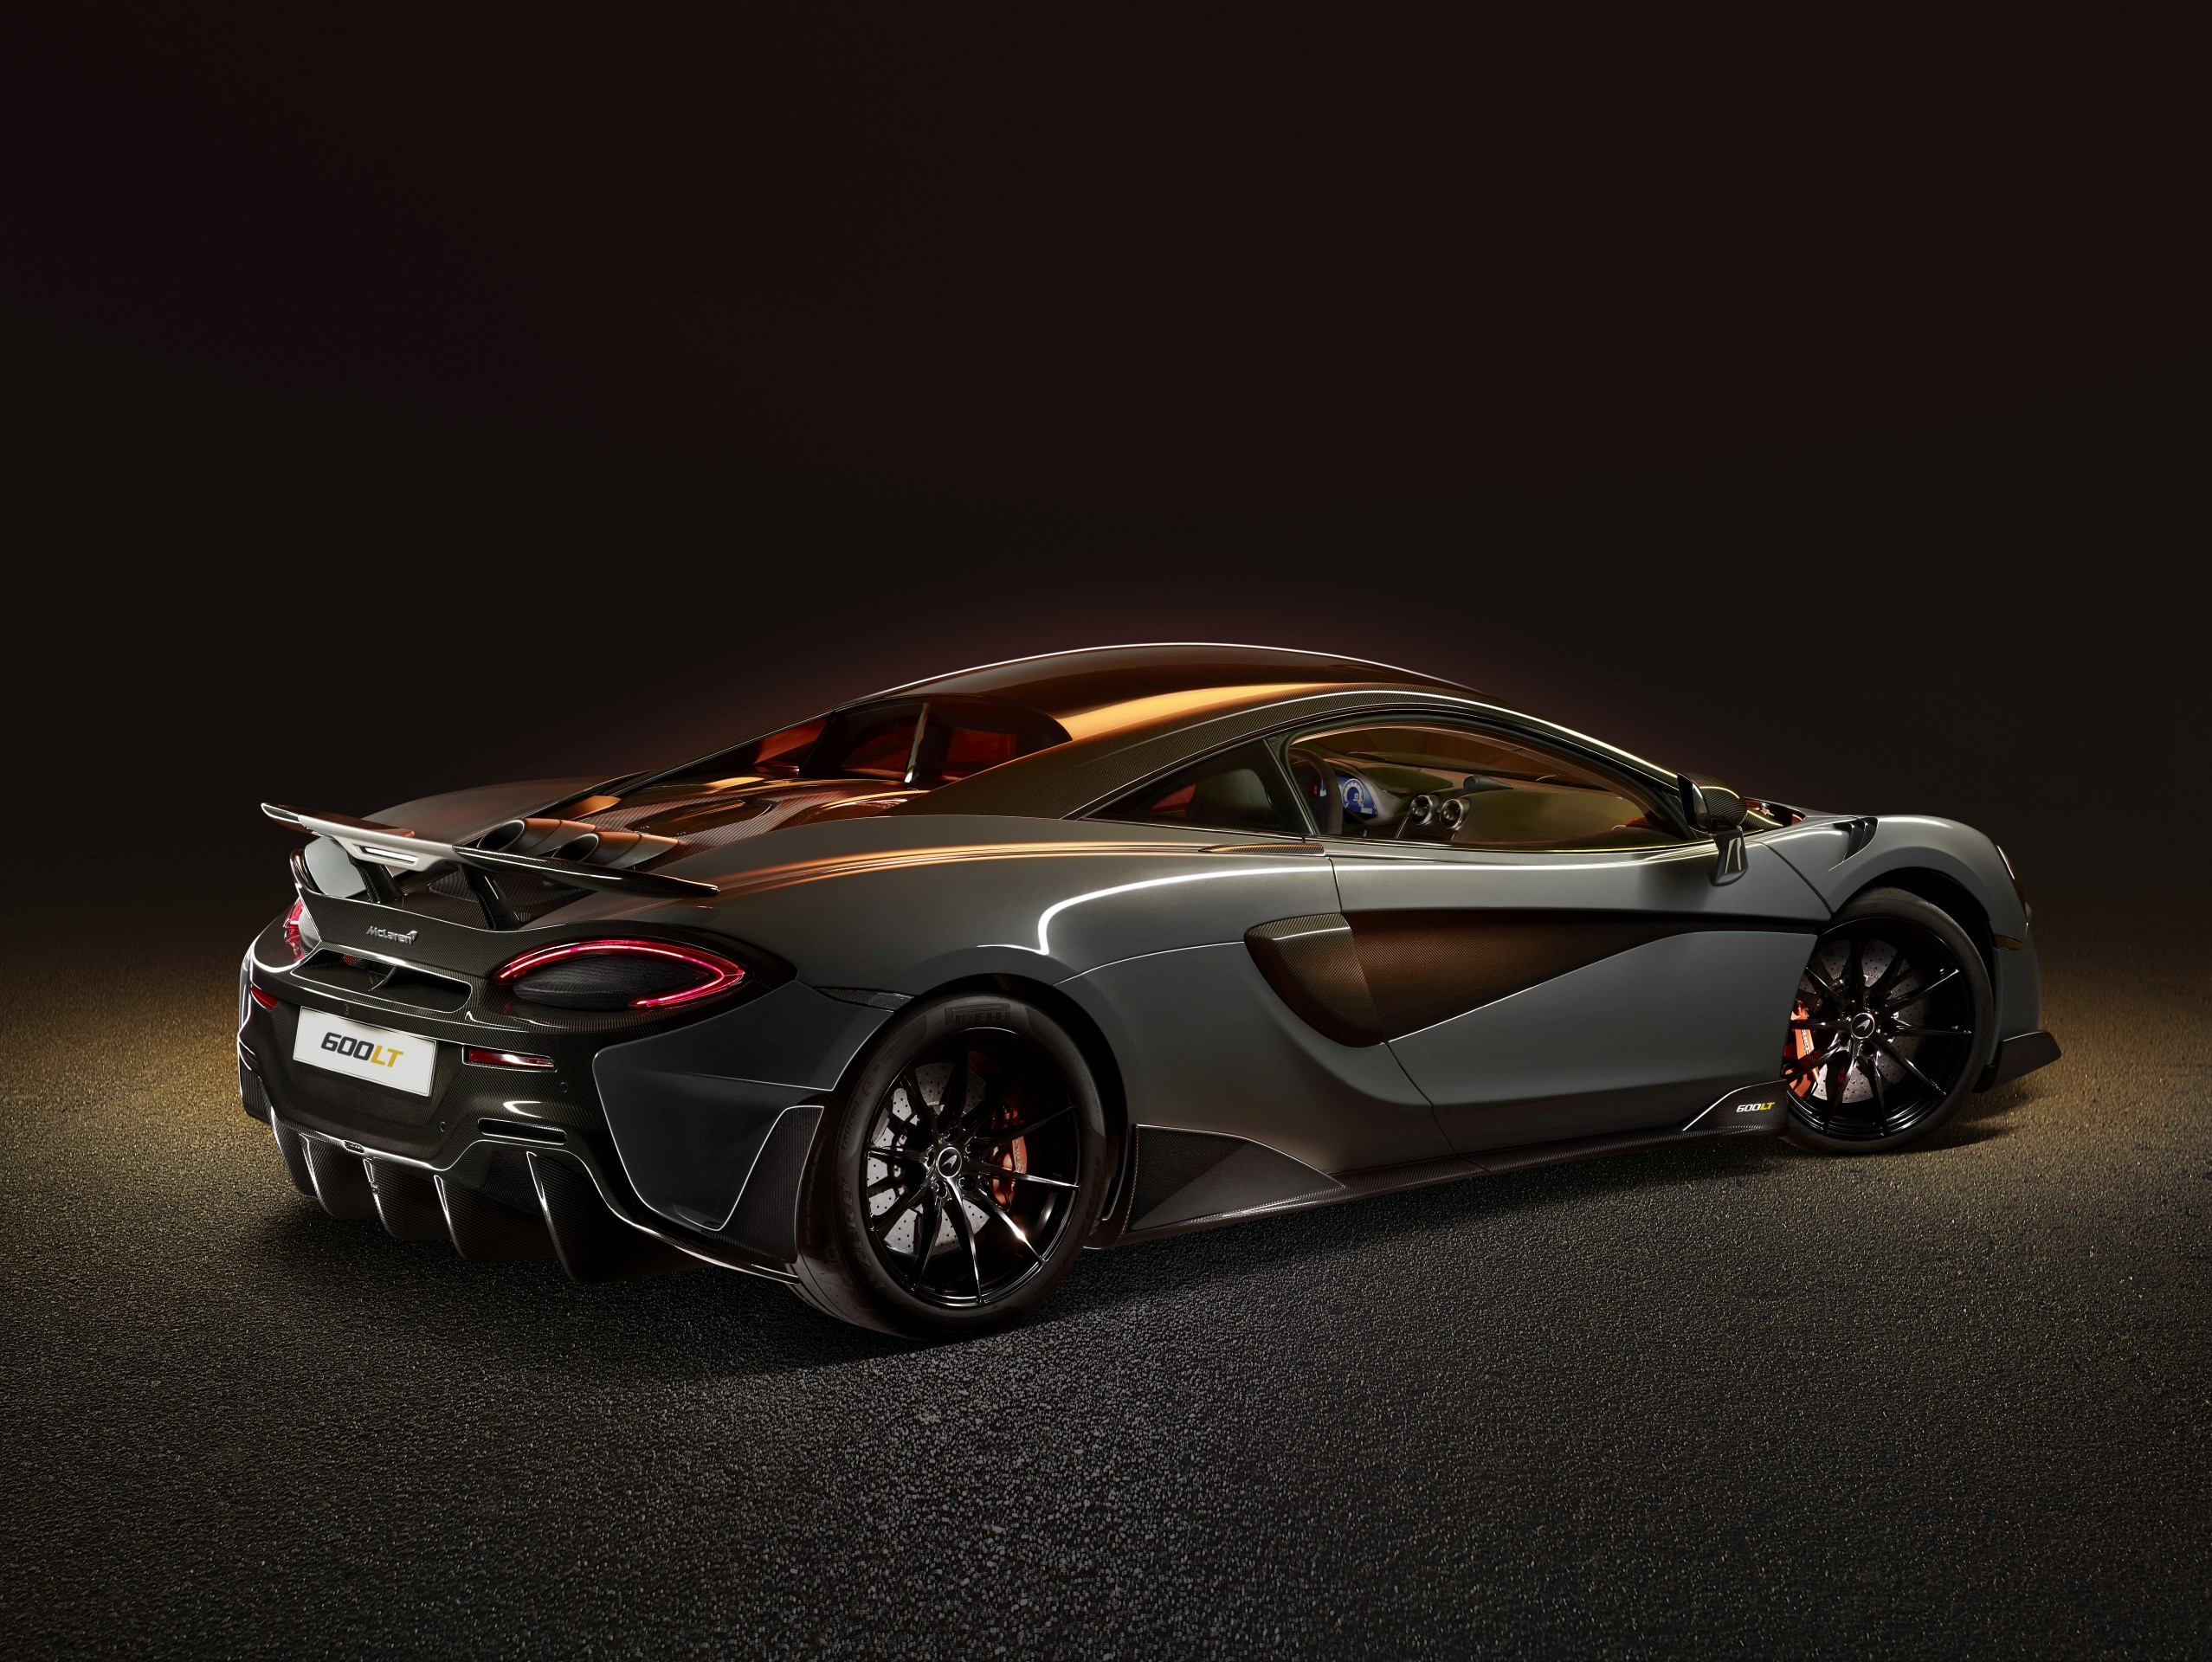 McLaren's 600LT is a low-production 'entry-level' supercar